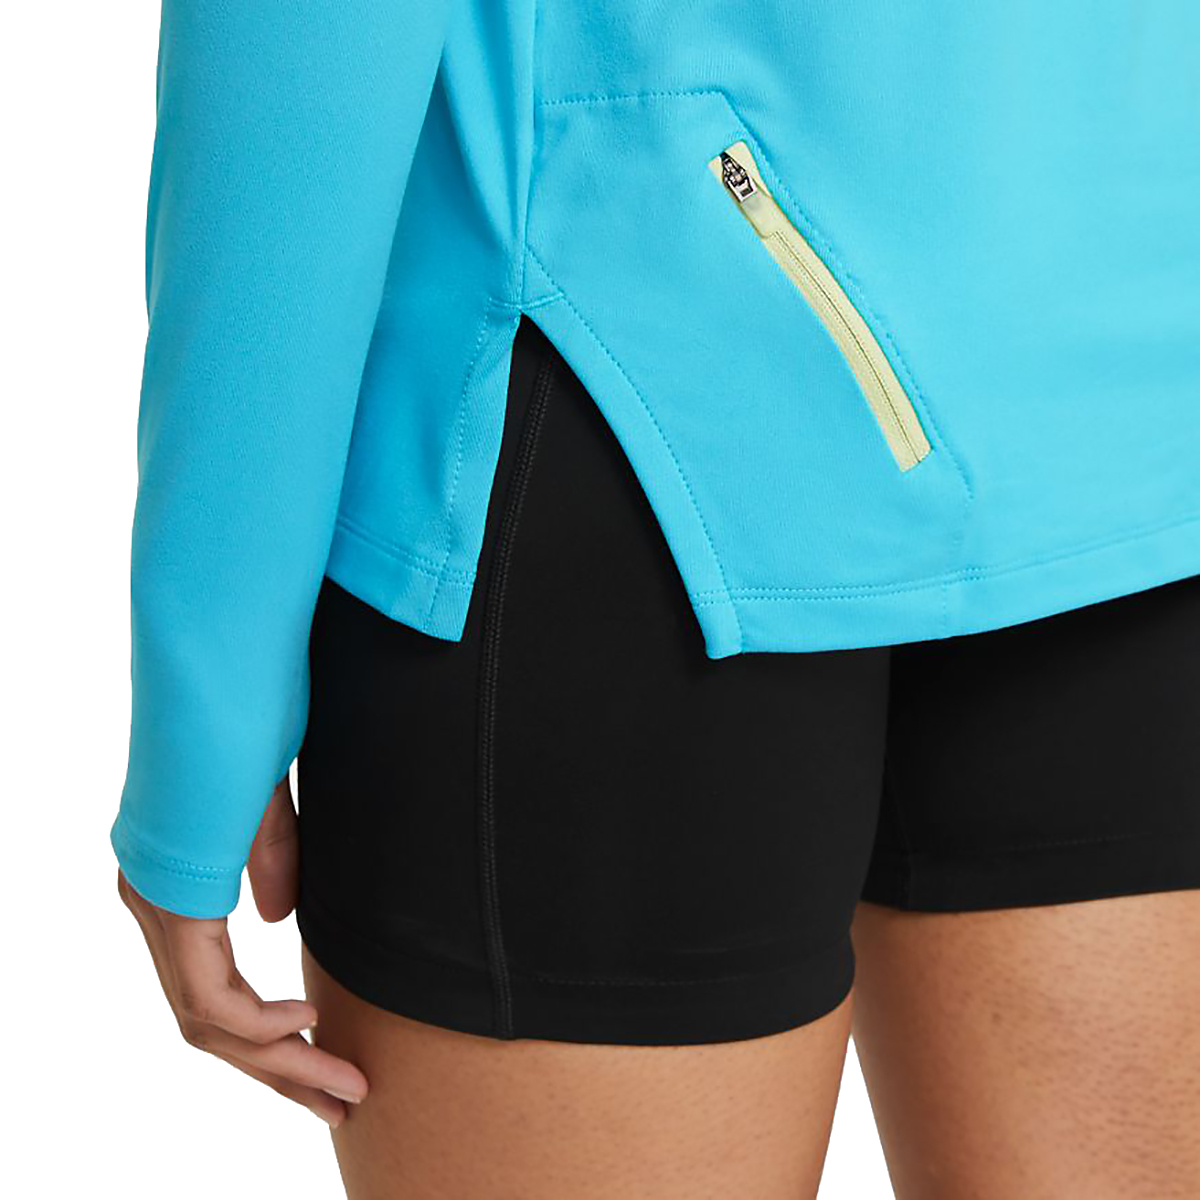 Women's Nike Element Trail Running Midlayer - Color: Chlorine Blue/Reflective Silv - Size: XS, Chlorine Blue/Reflective Silv, large, image 5